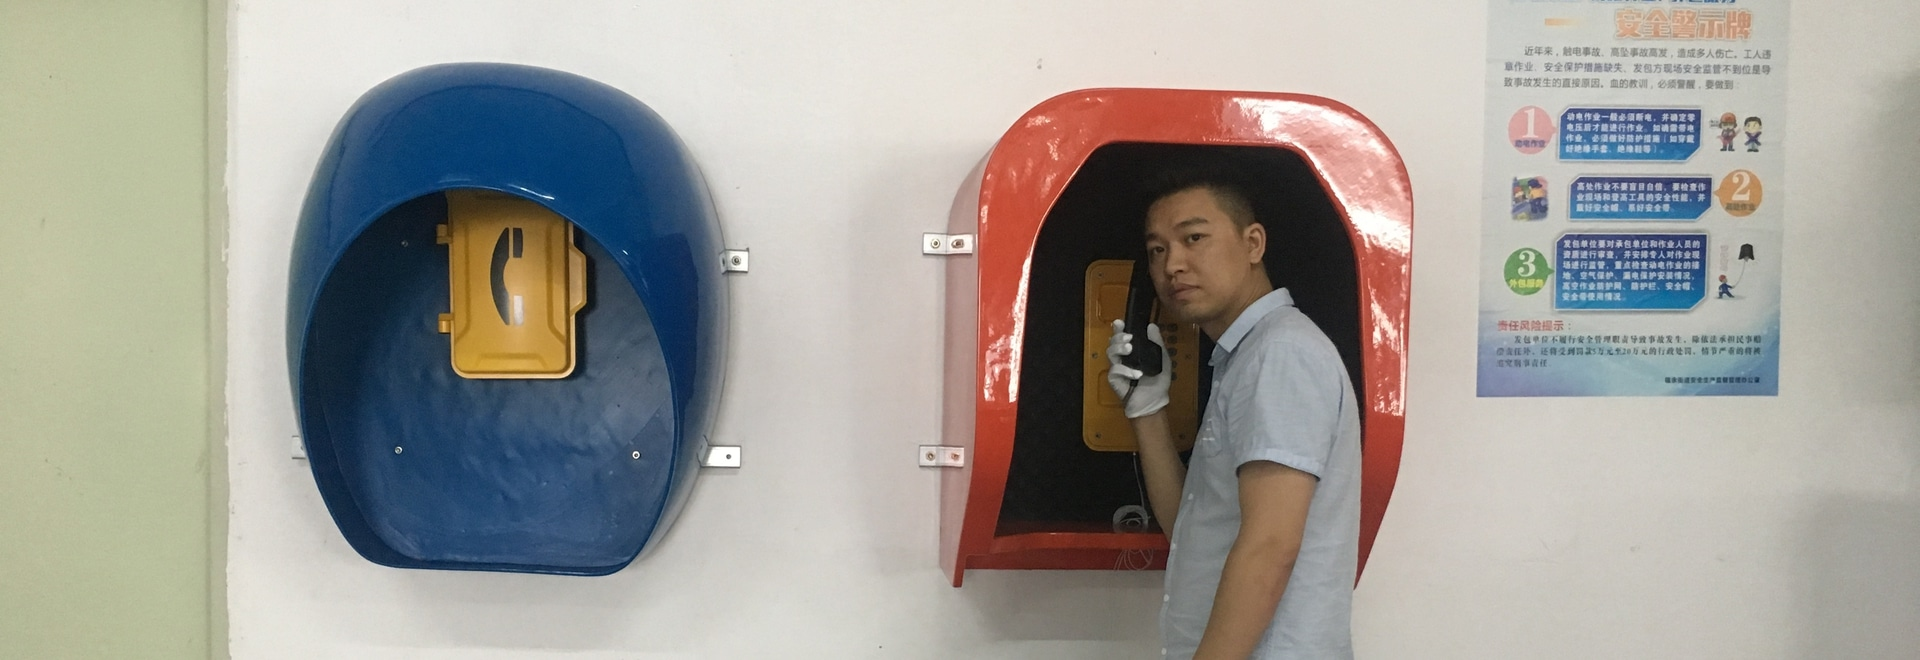 JR outdoor telephone booths had installed in a mold factory in China